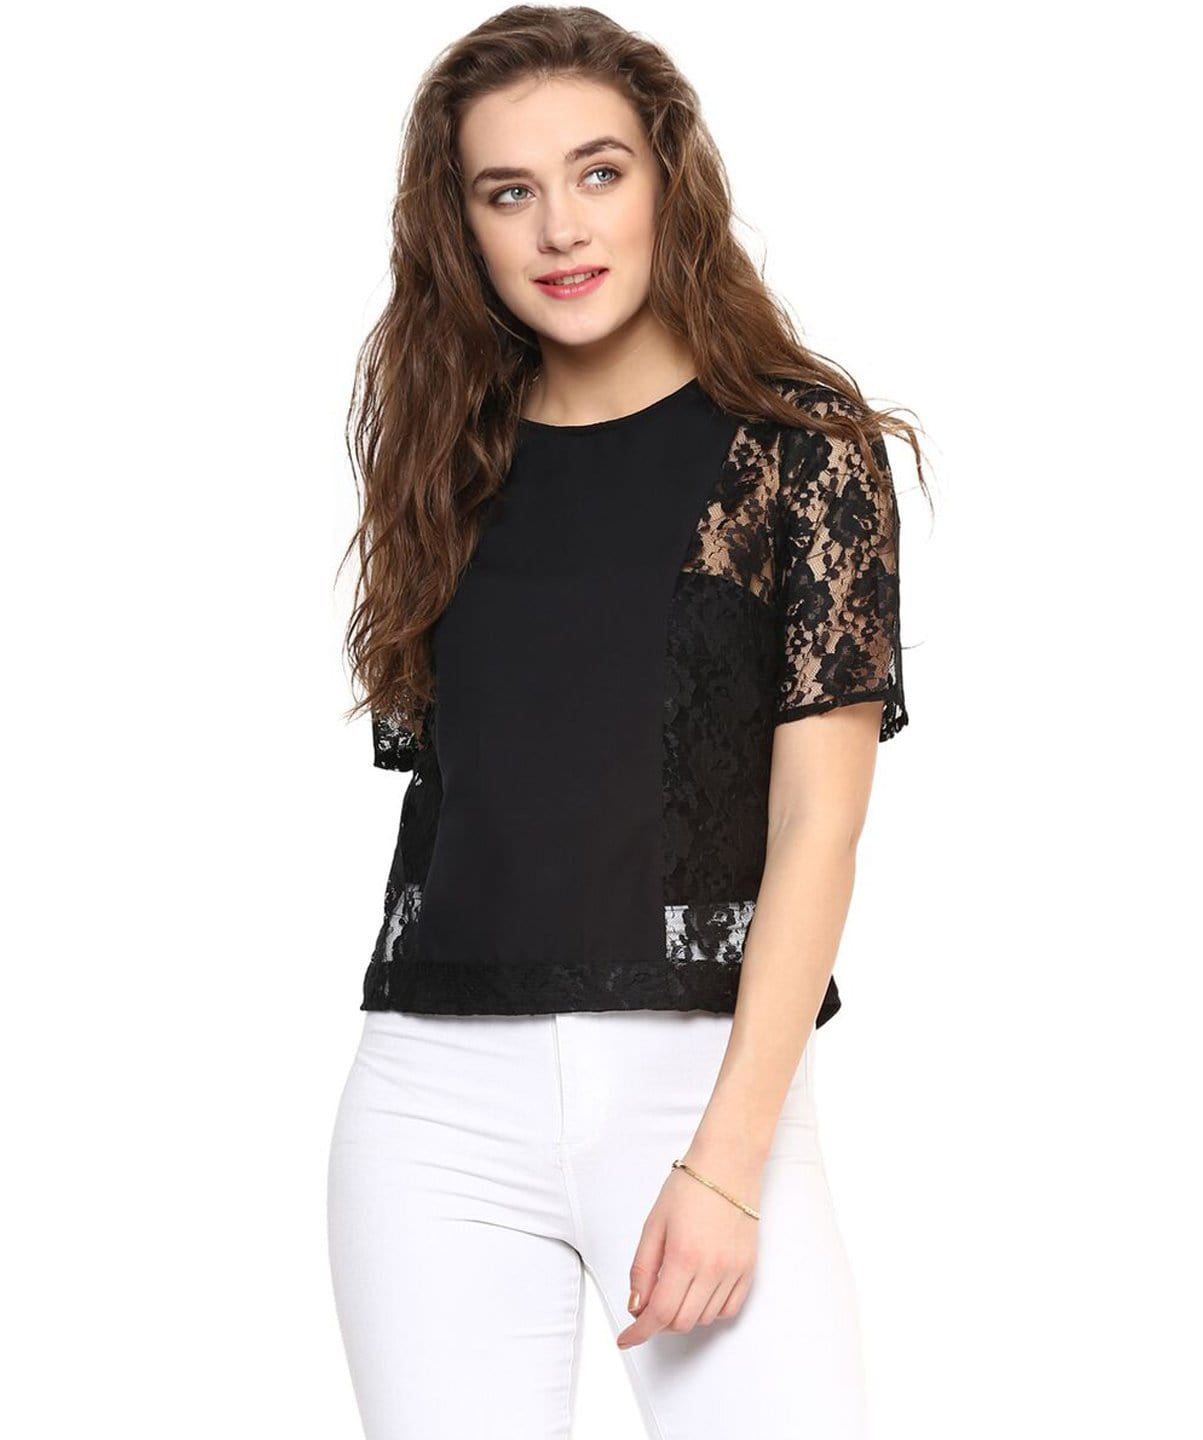 Solid Black Lace Crepe Top - Uptownie